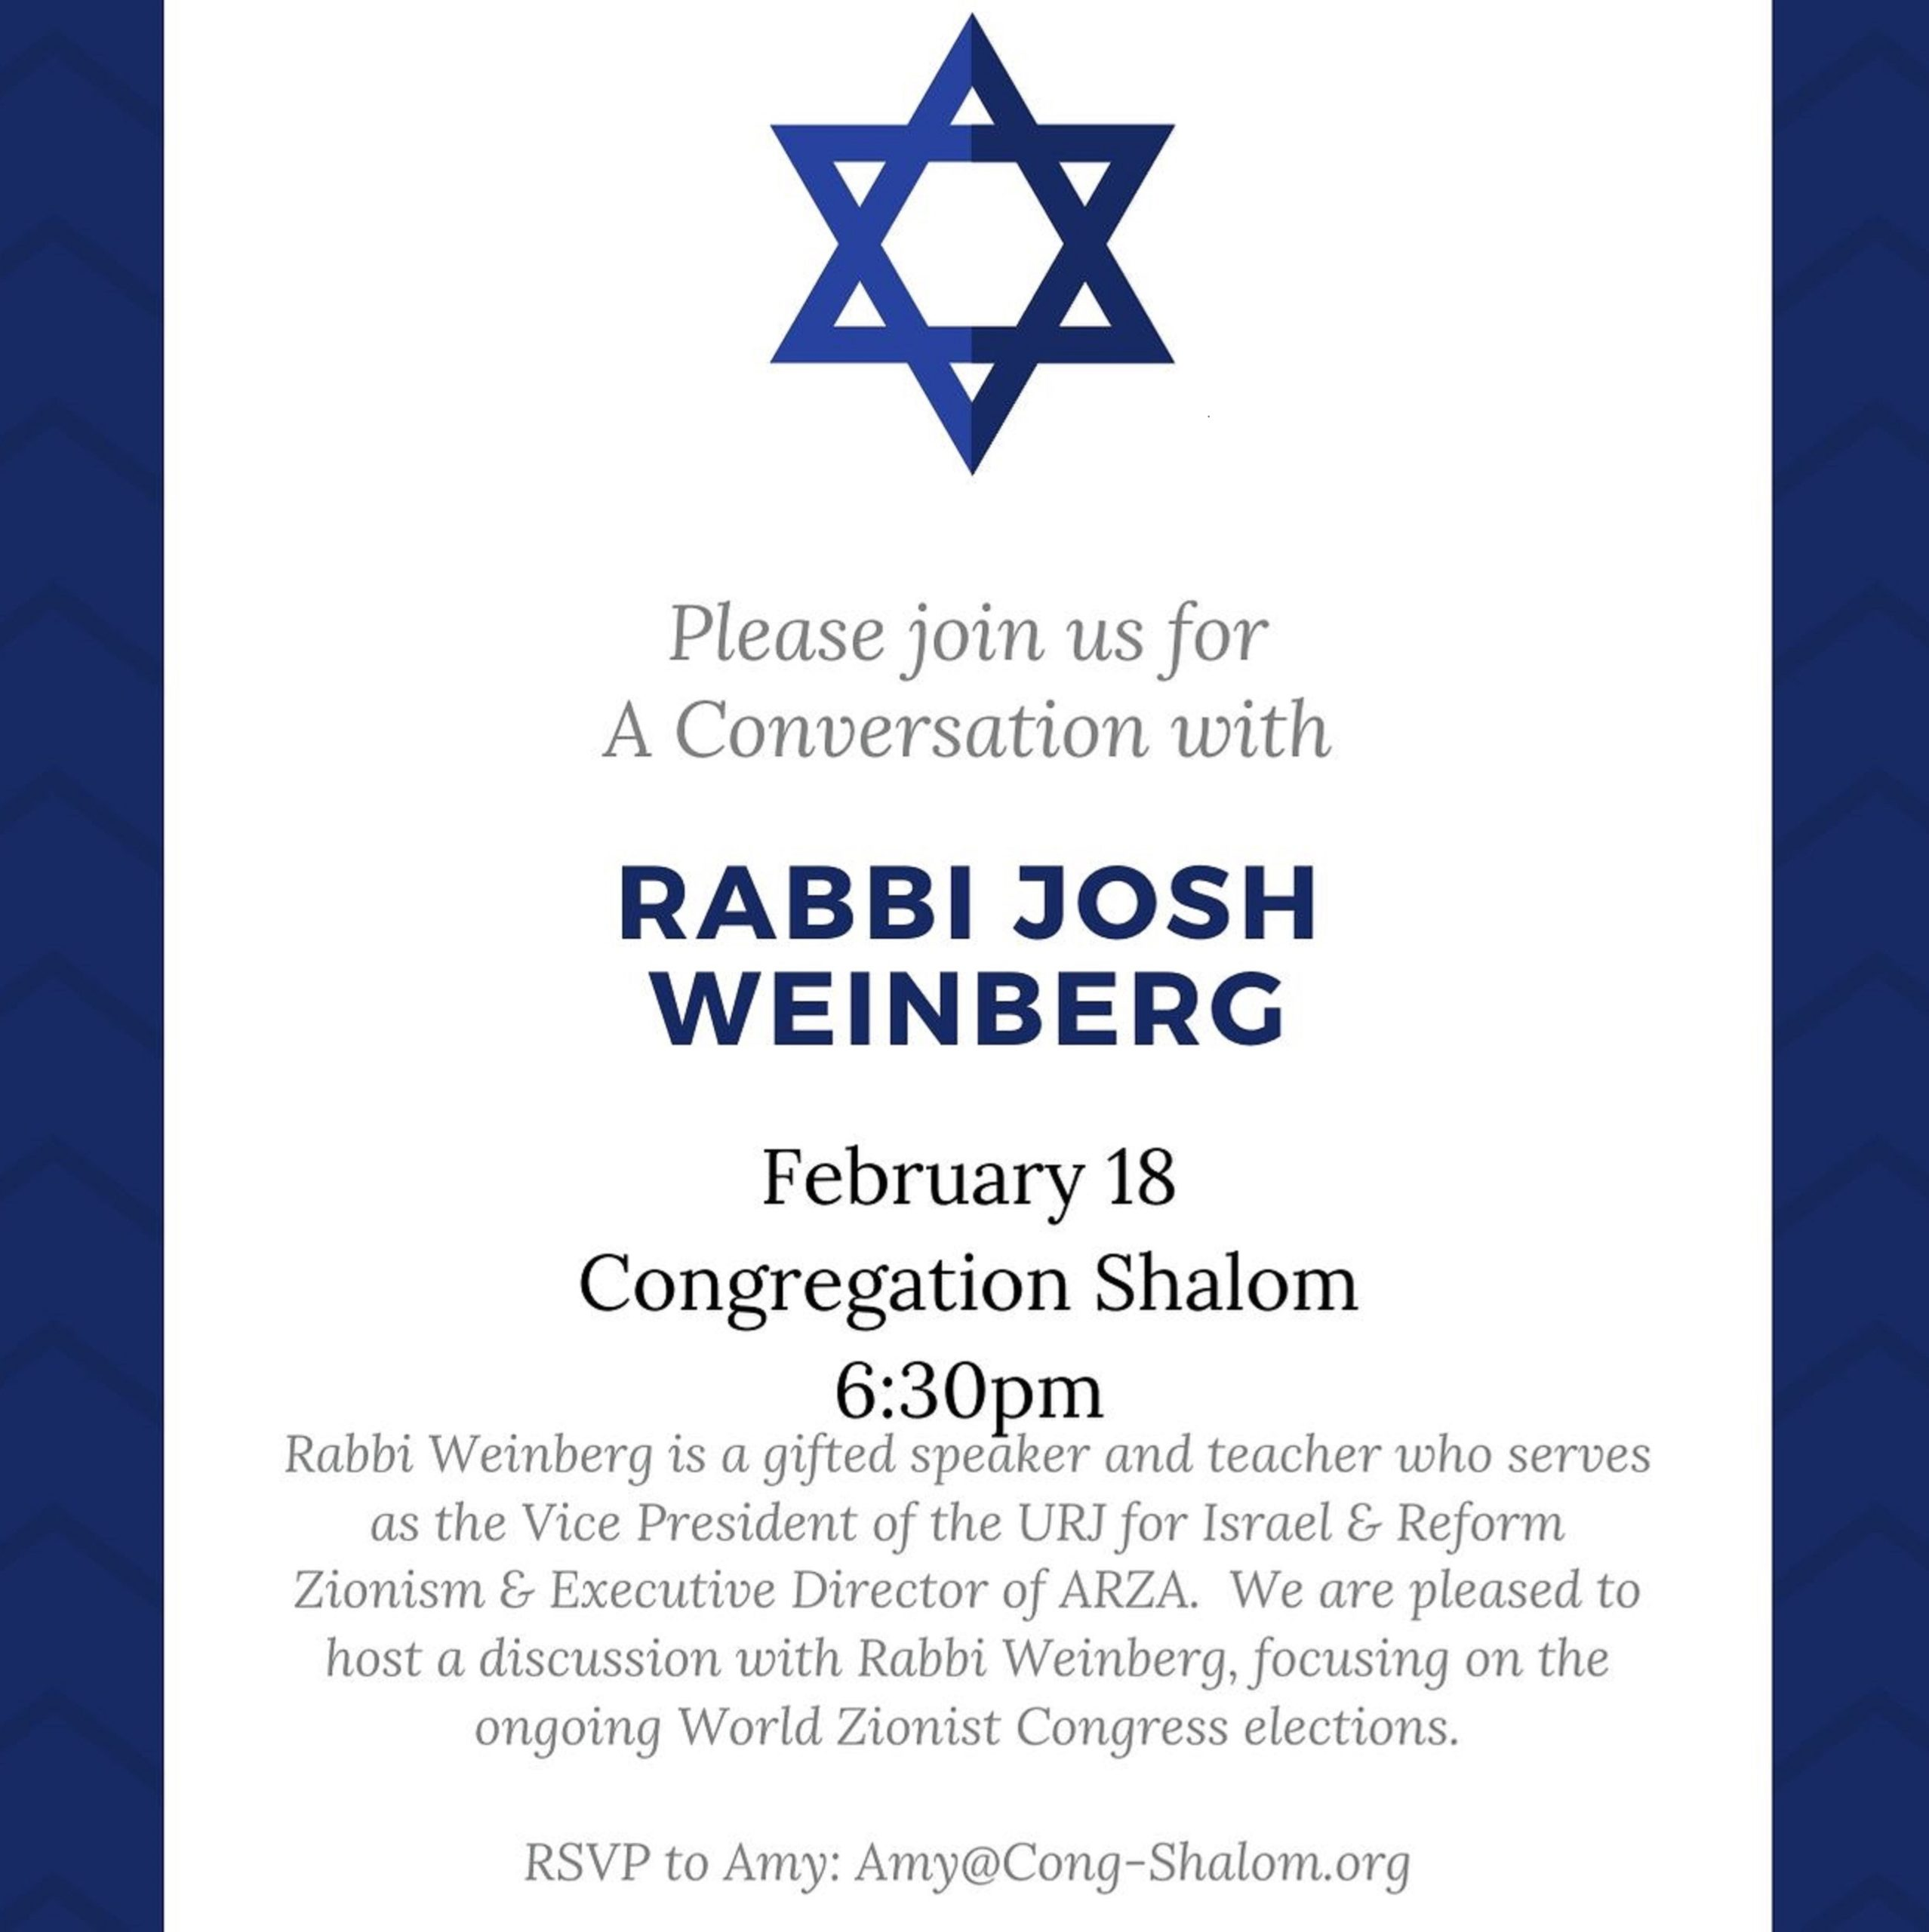 Rabbi_Weinberg_Program_Flyer